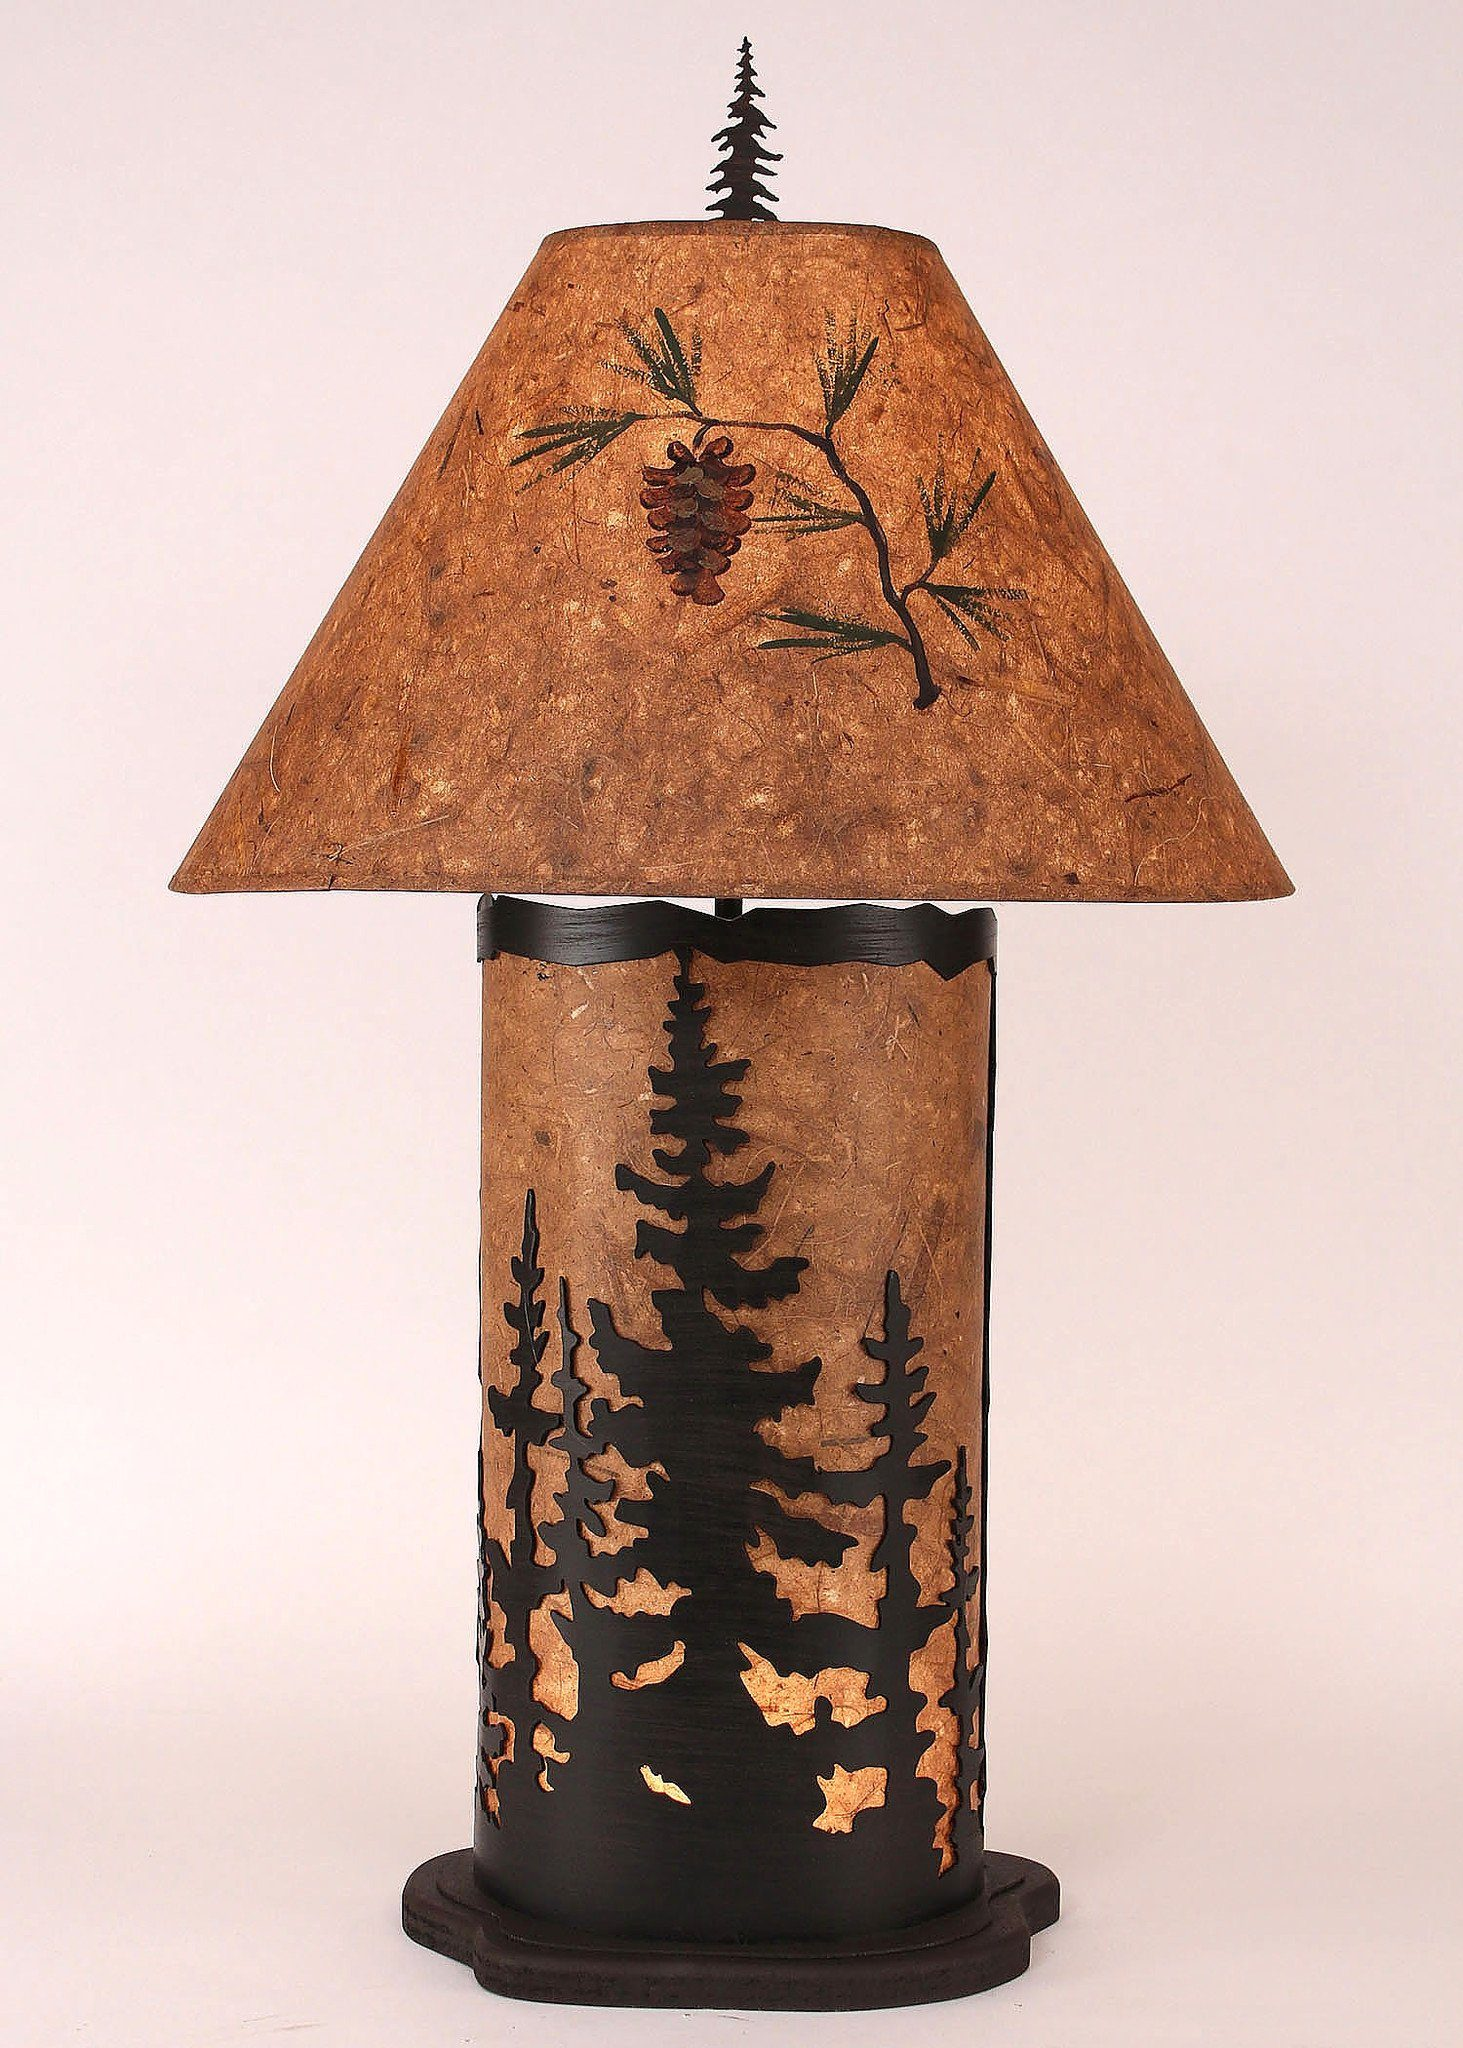 Large Feather Tree Table Lamp with Wood Chip Stain Finish